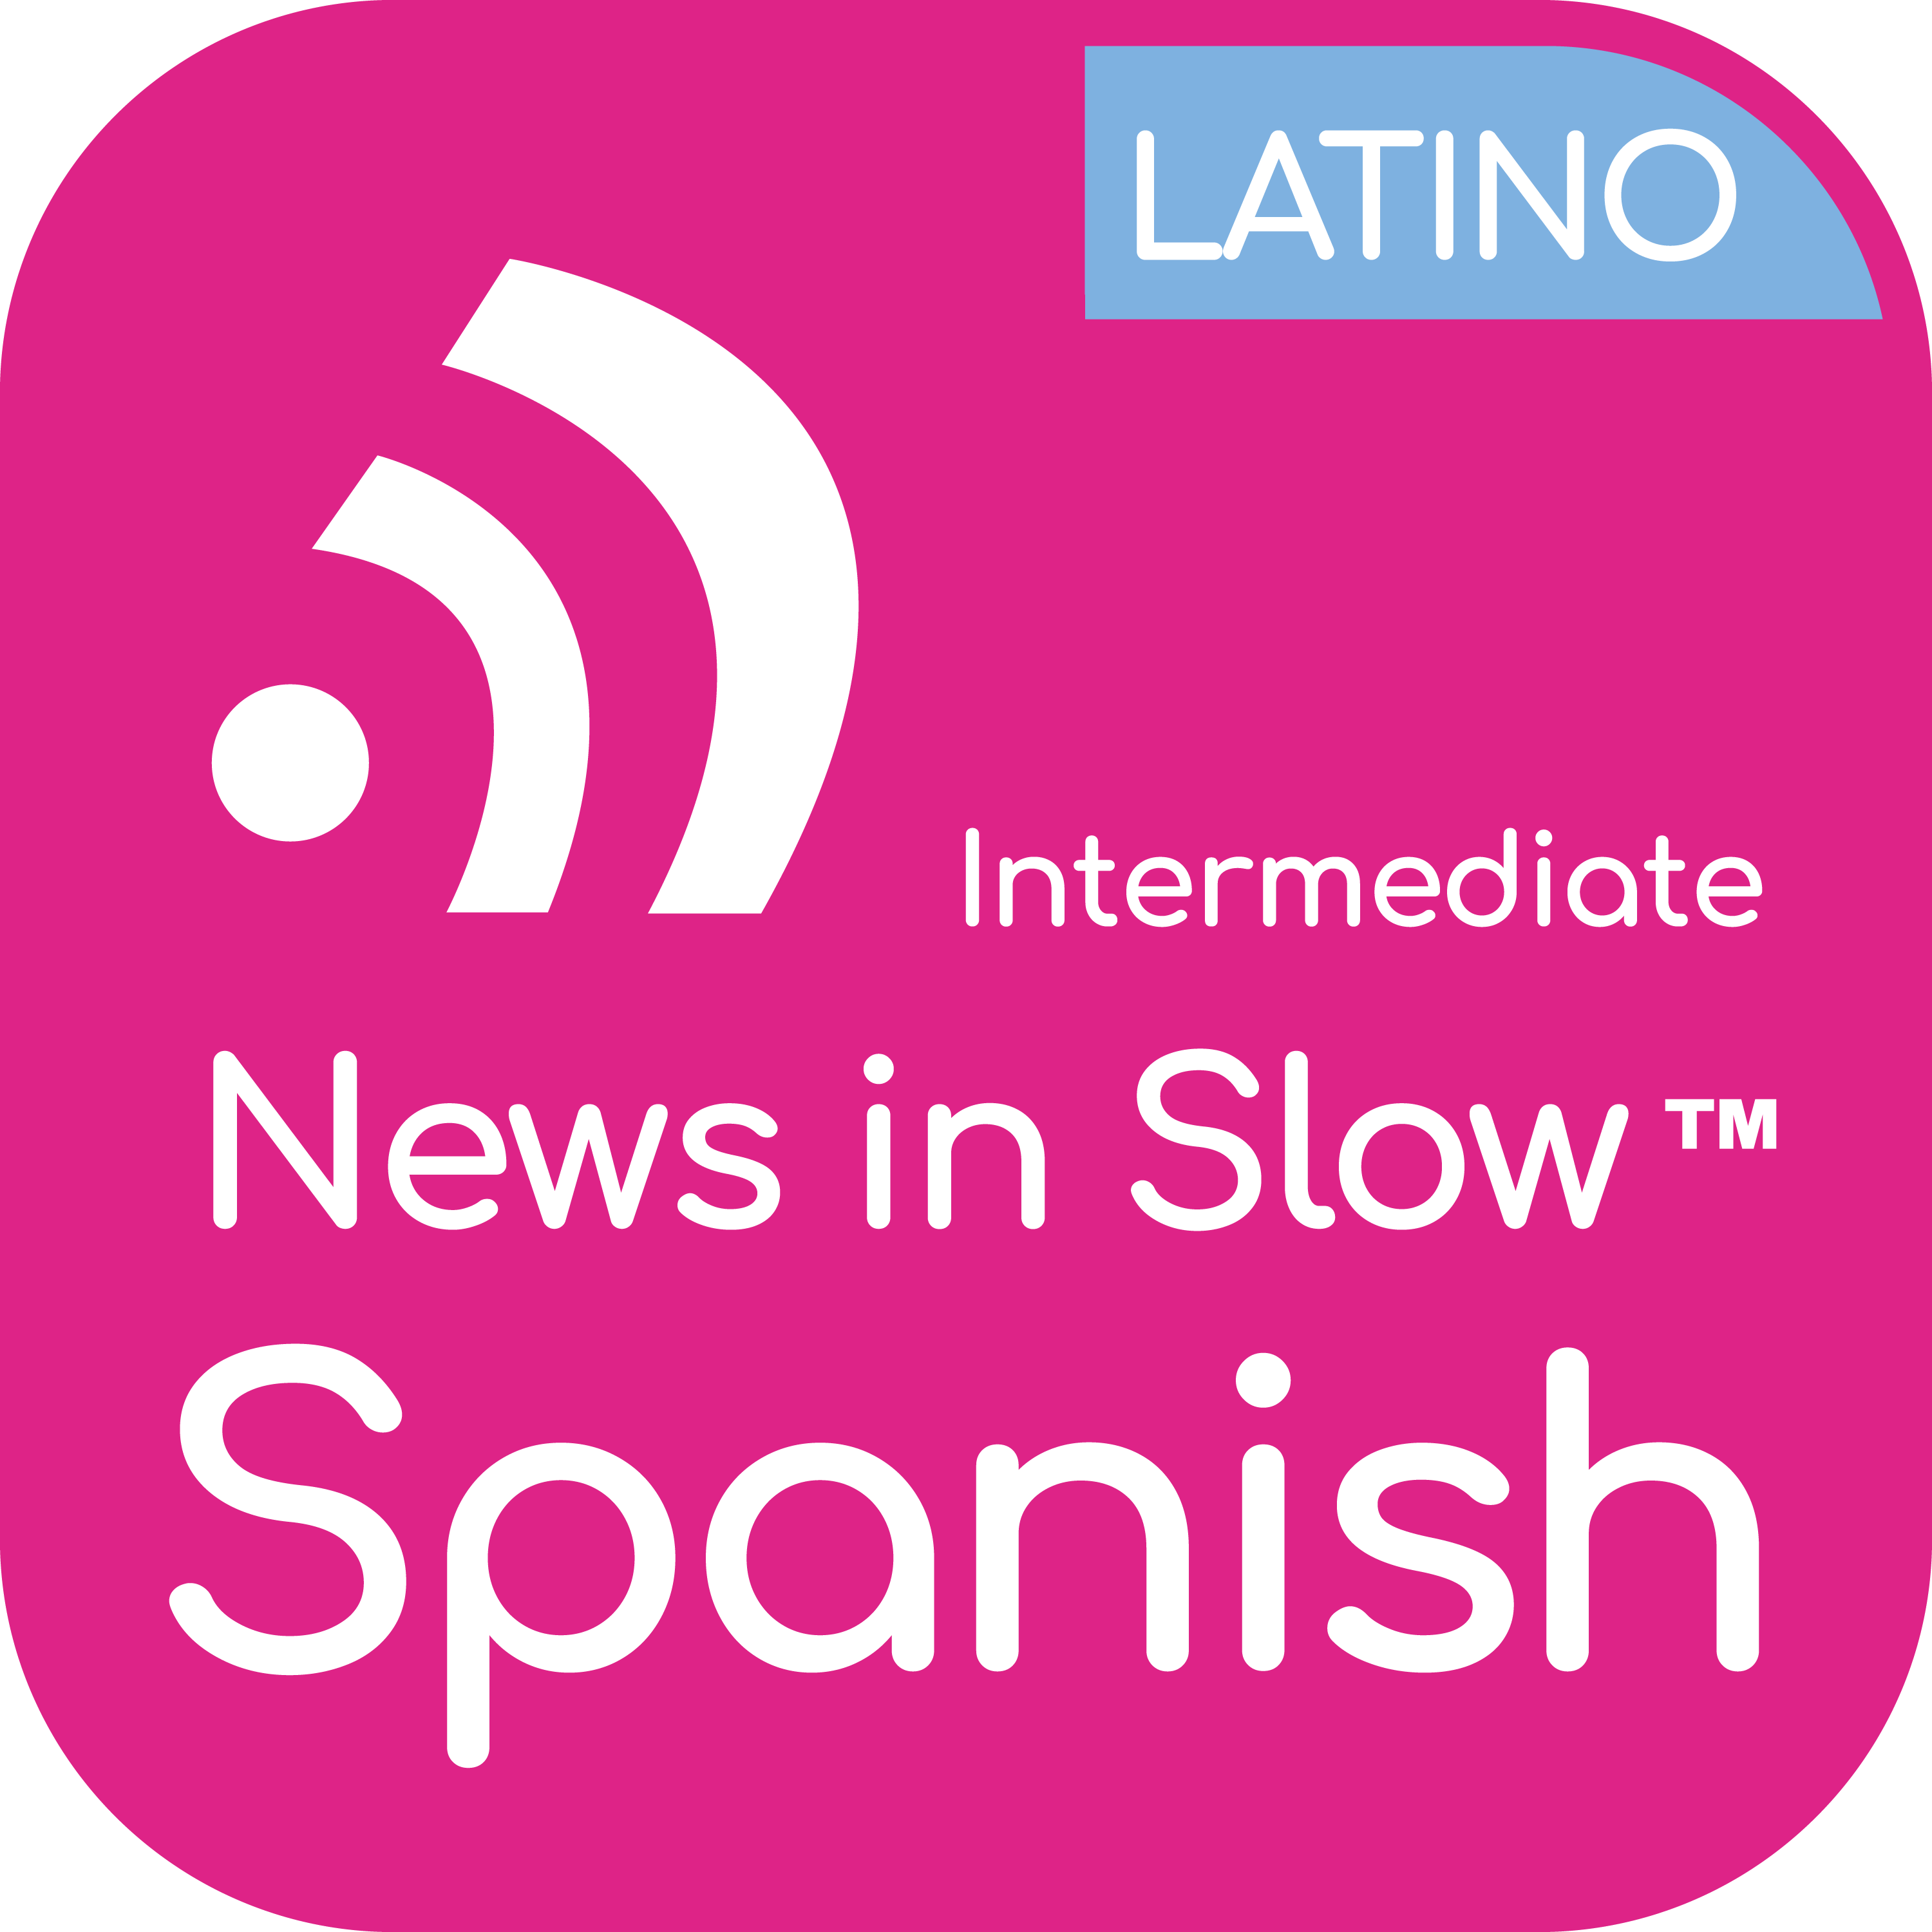 News in Slow Spanish Latino - # 132 - Spanish grammar, news and expressions